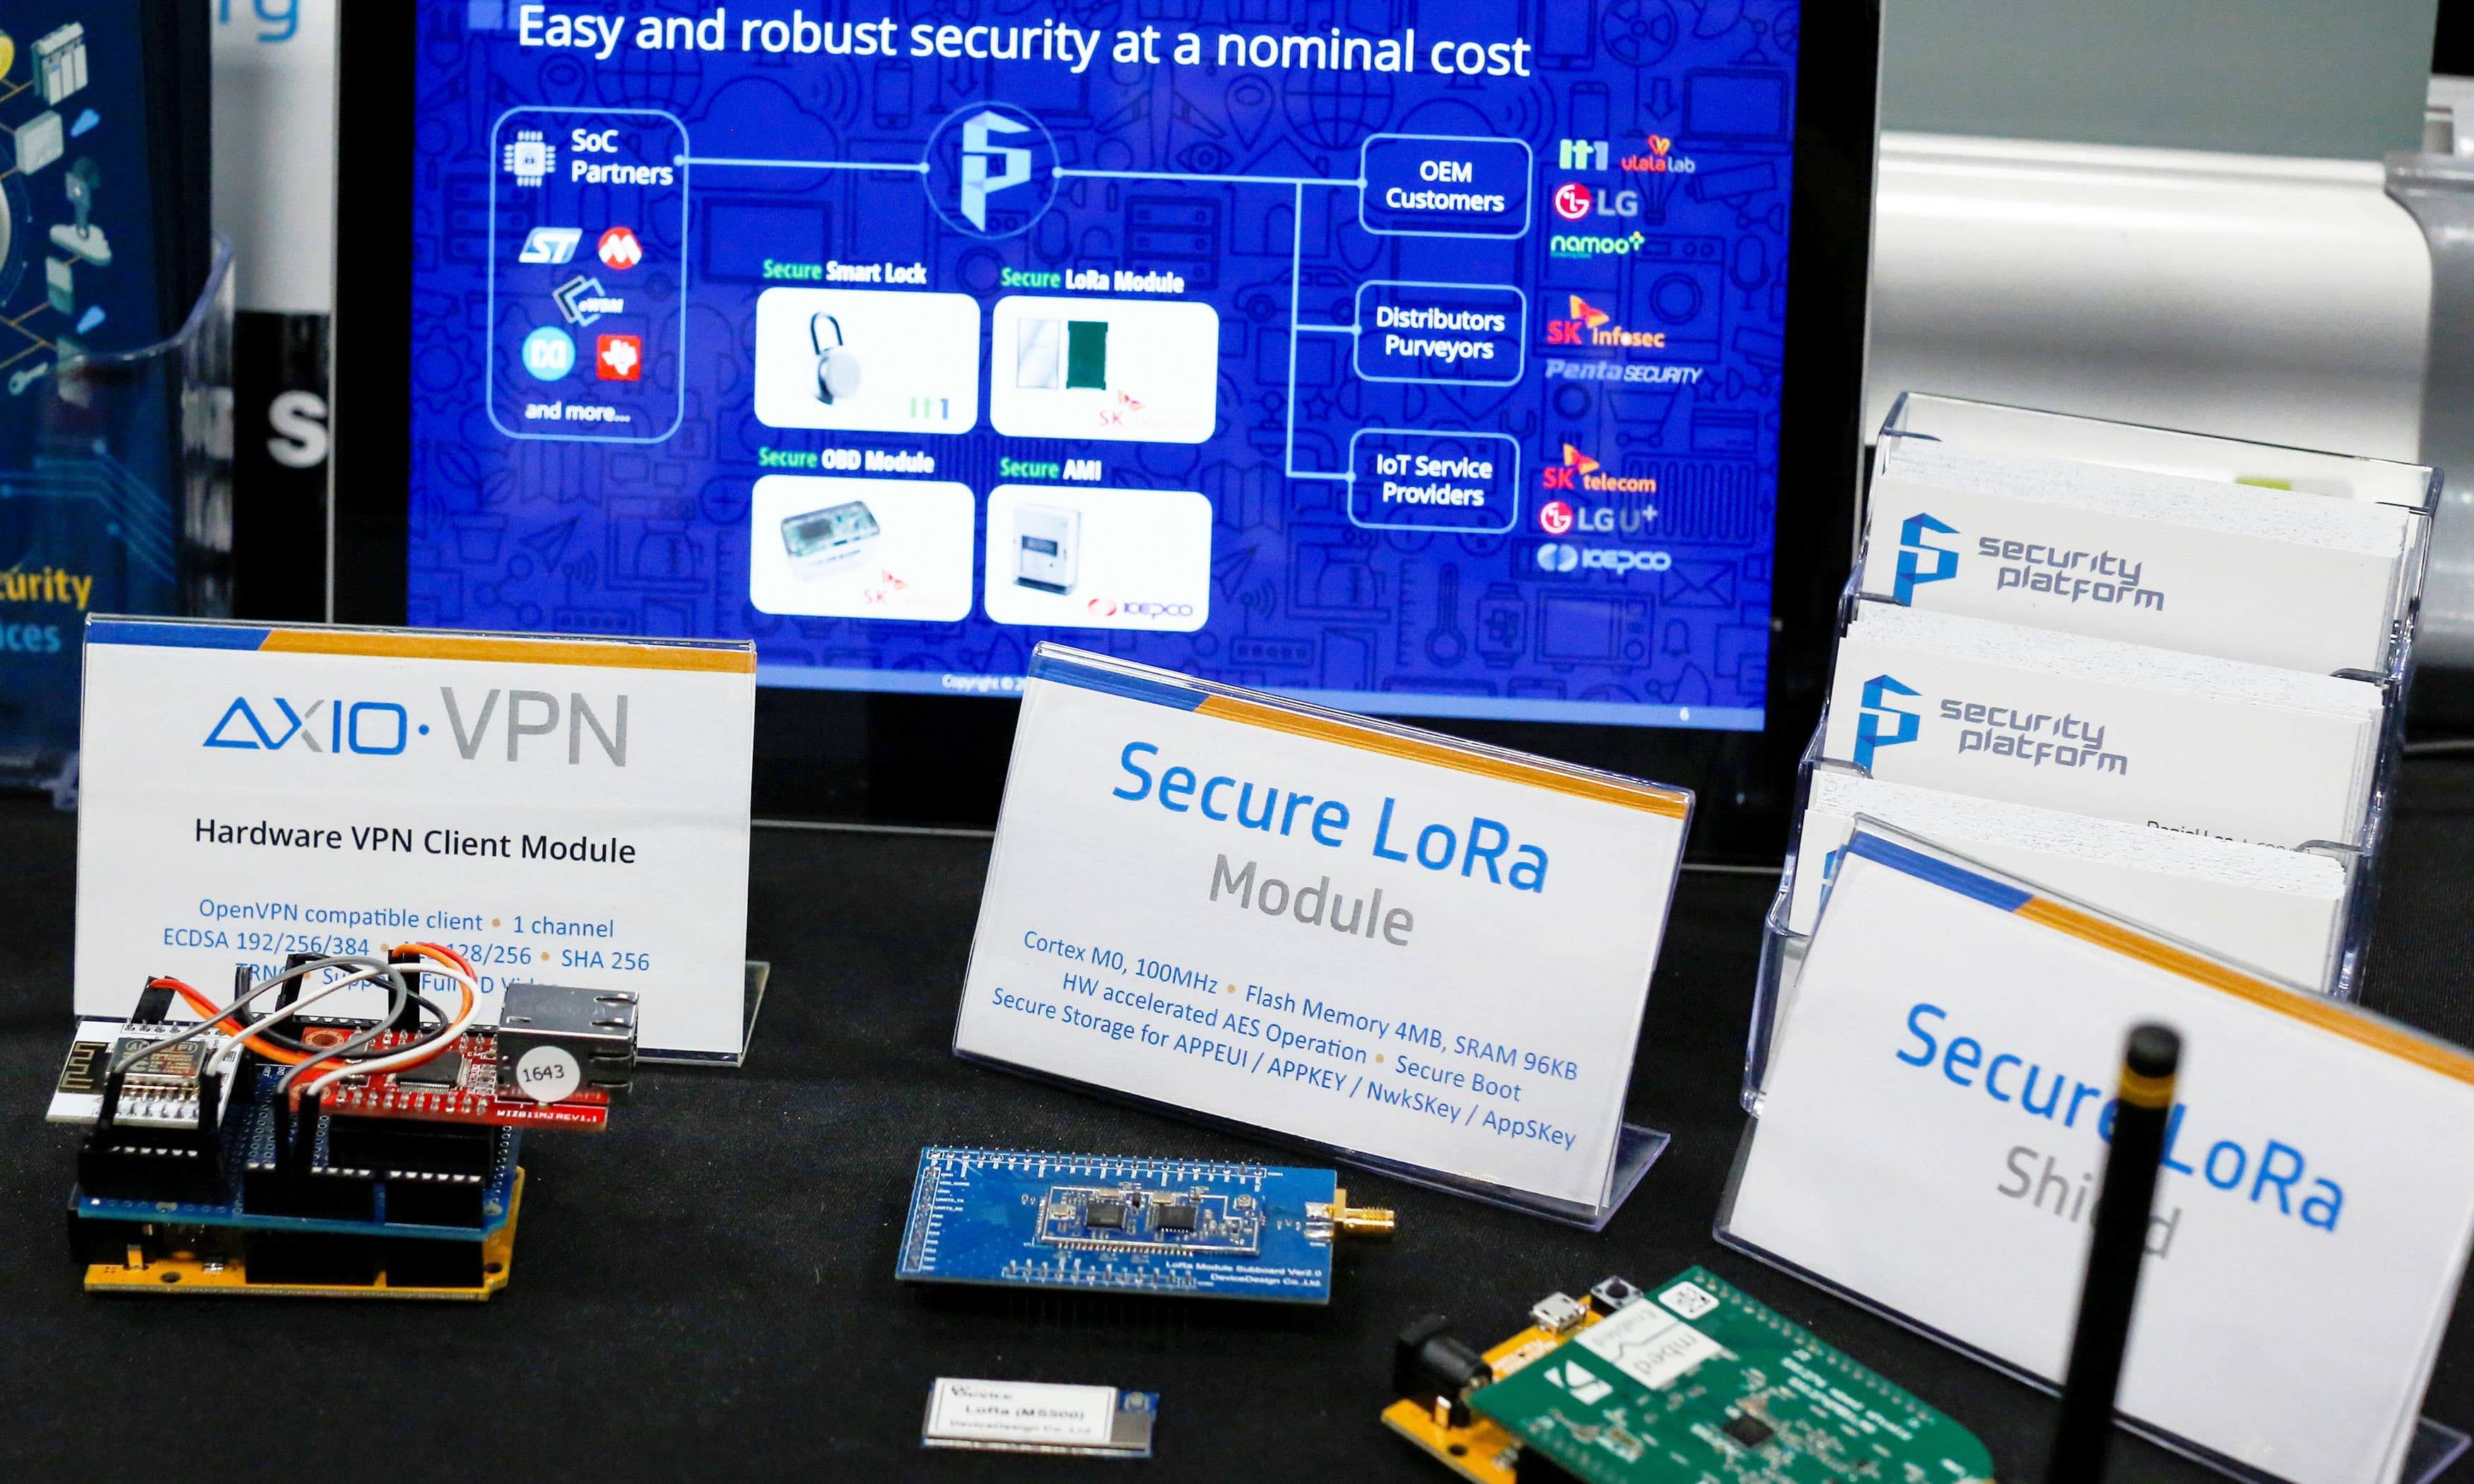 Hardware used for Cybersecurity are displayed at the desk of Security Platform during an event in Manhattan. —Reuters